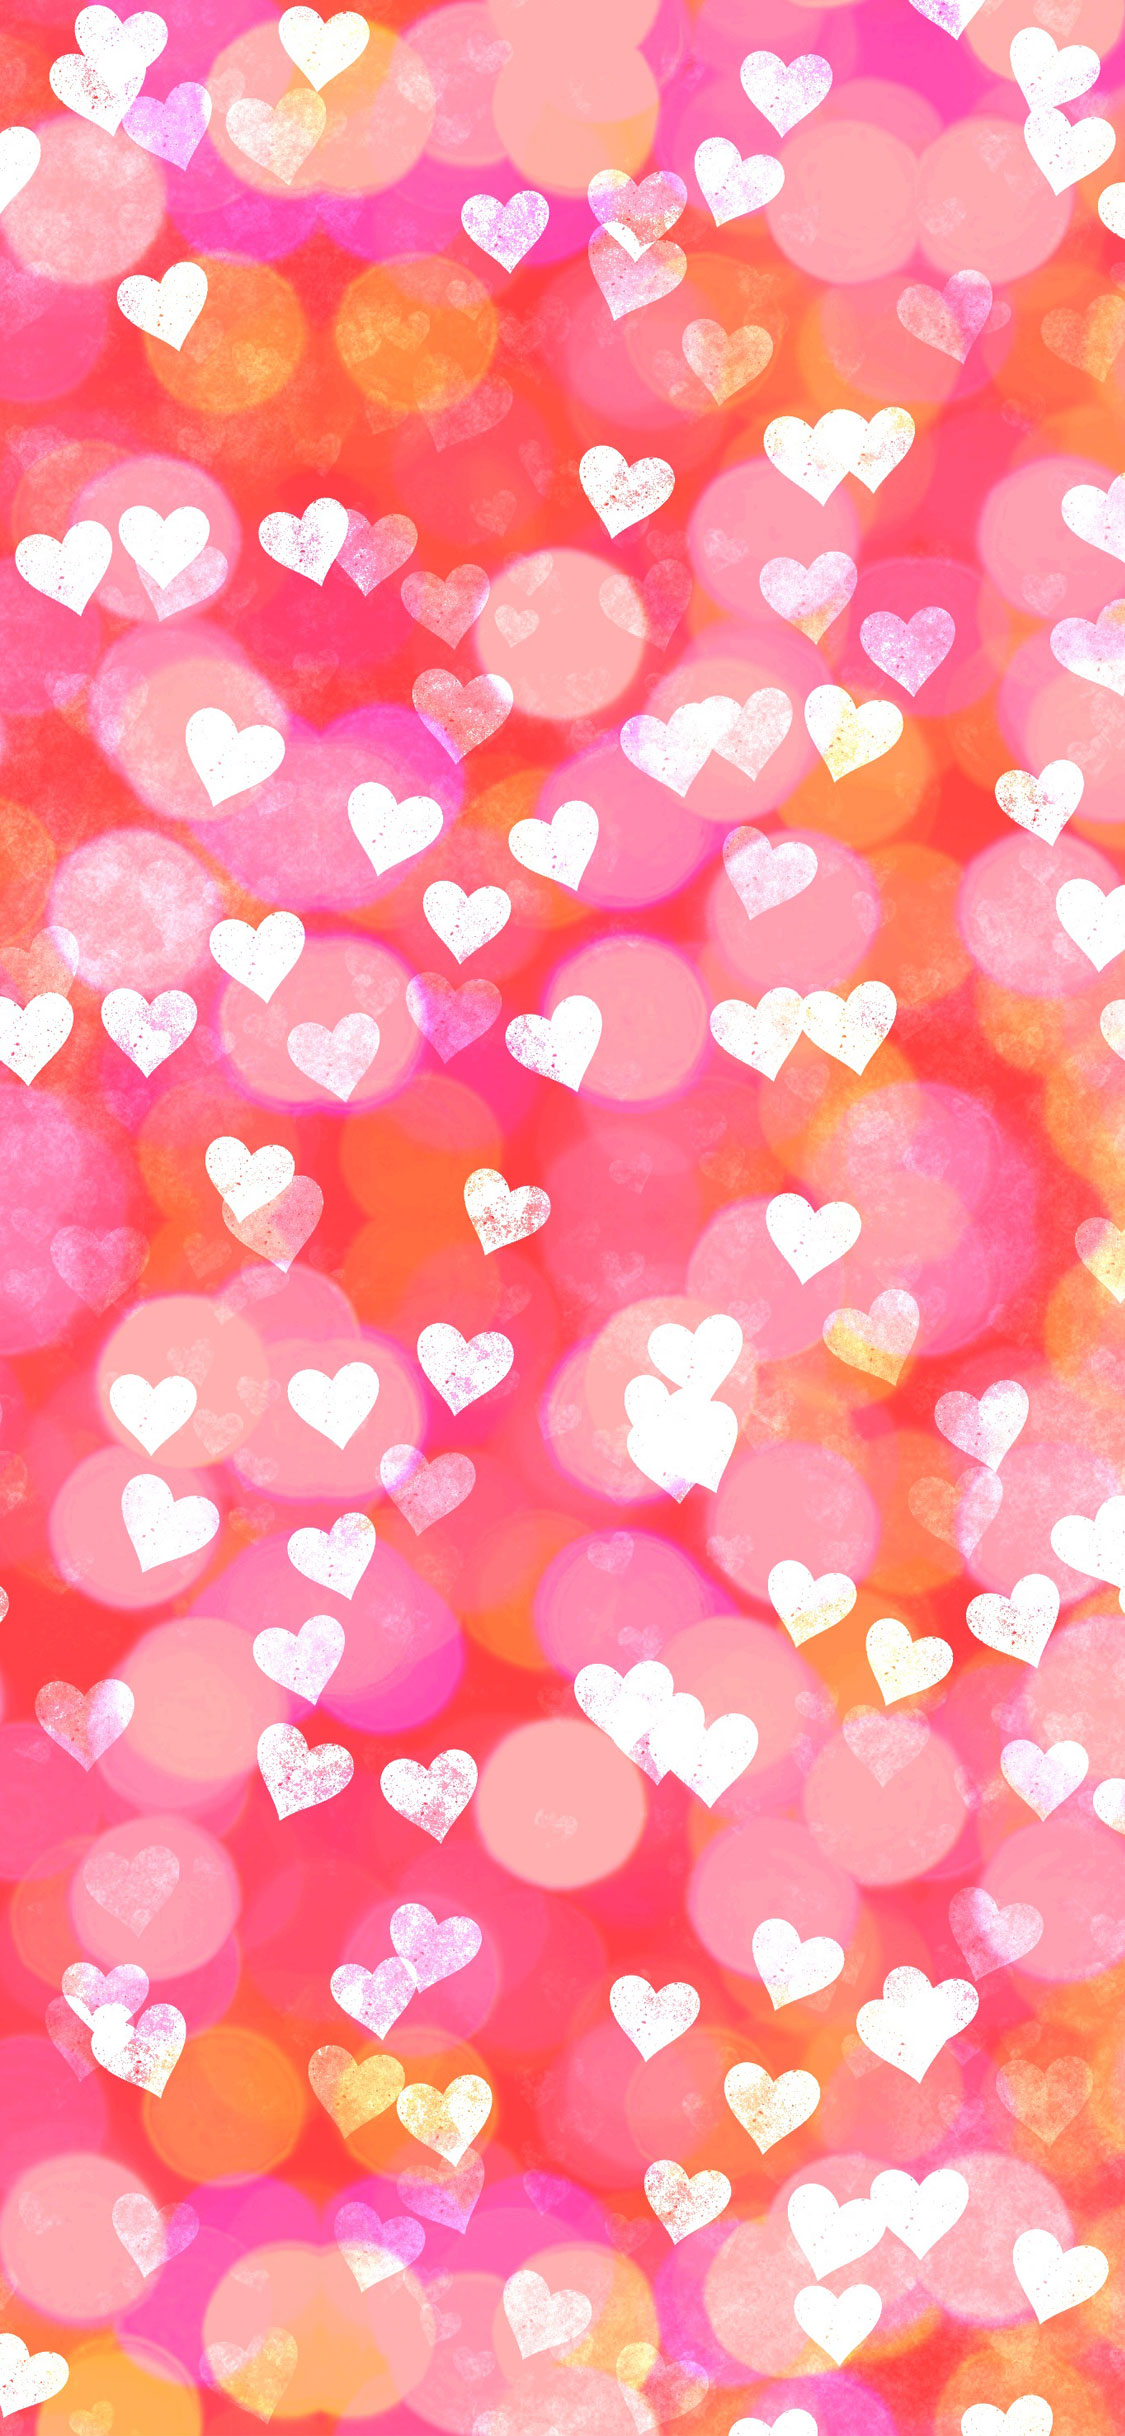 Hearts iPhone background pics